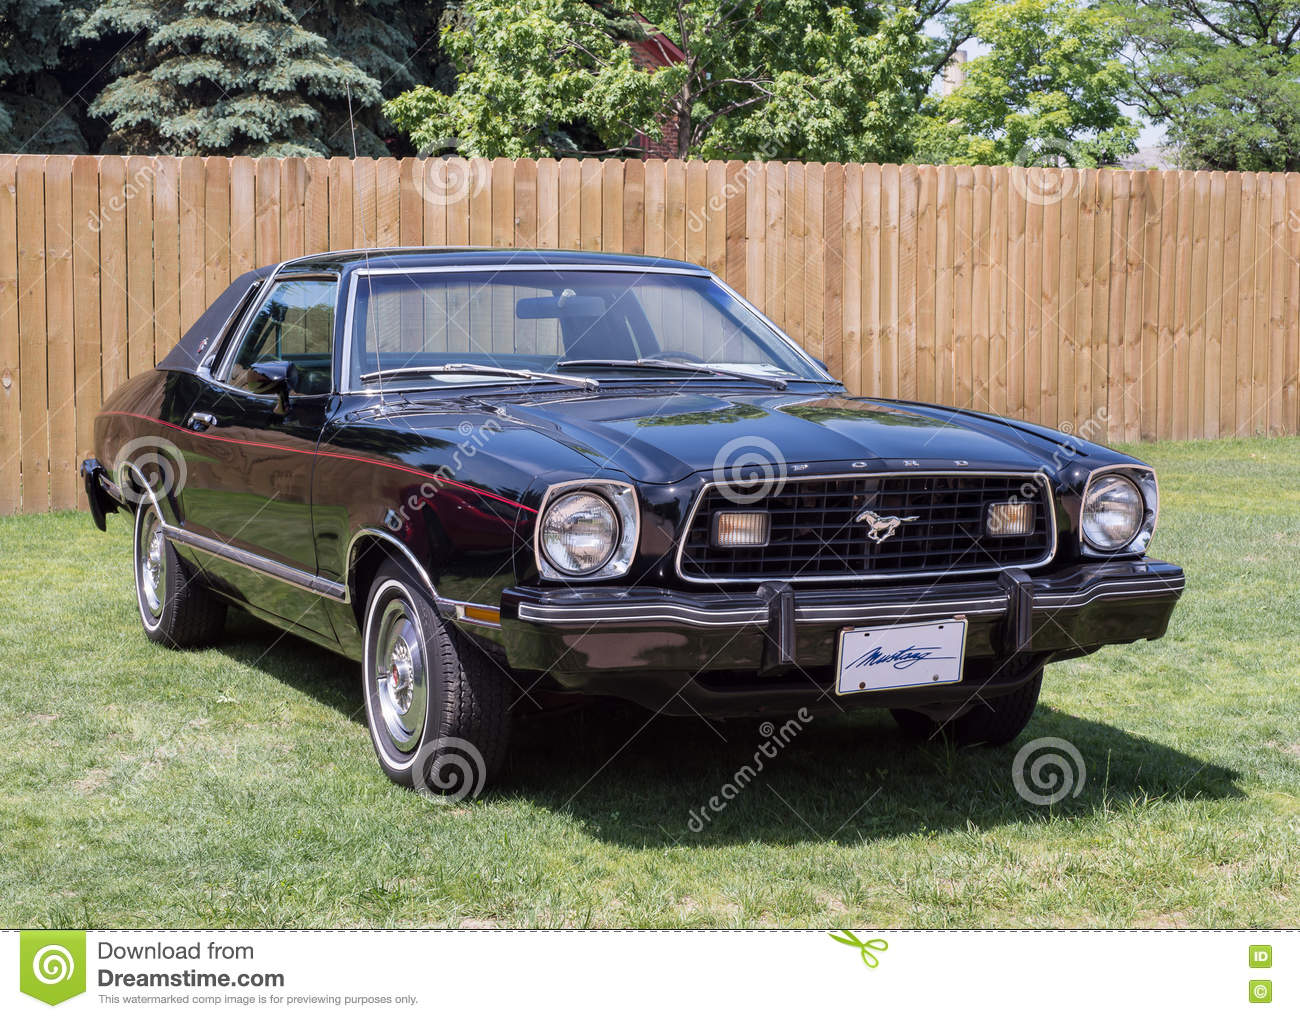 hight resolution of dearborn mi usa june 18 2016 a 1977 ford mustang ii car at the henry ford thf motor muster car show held at greenfield village near detroit